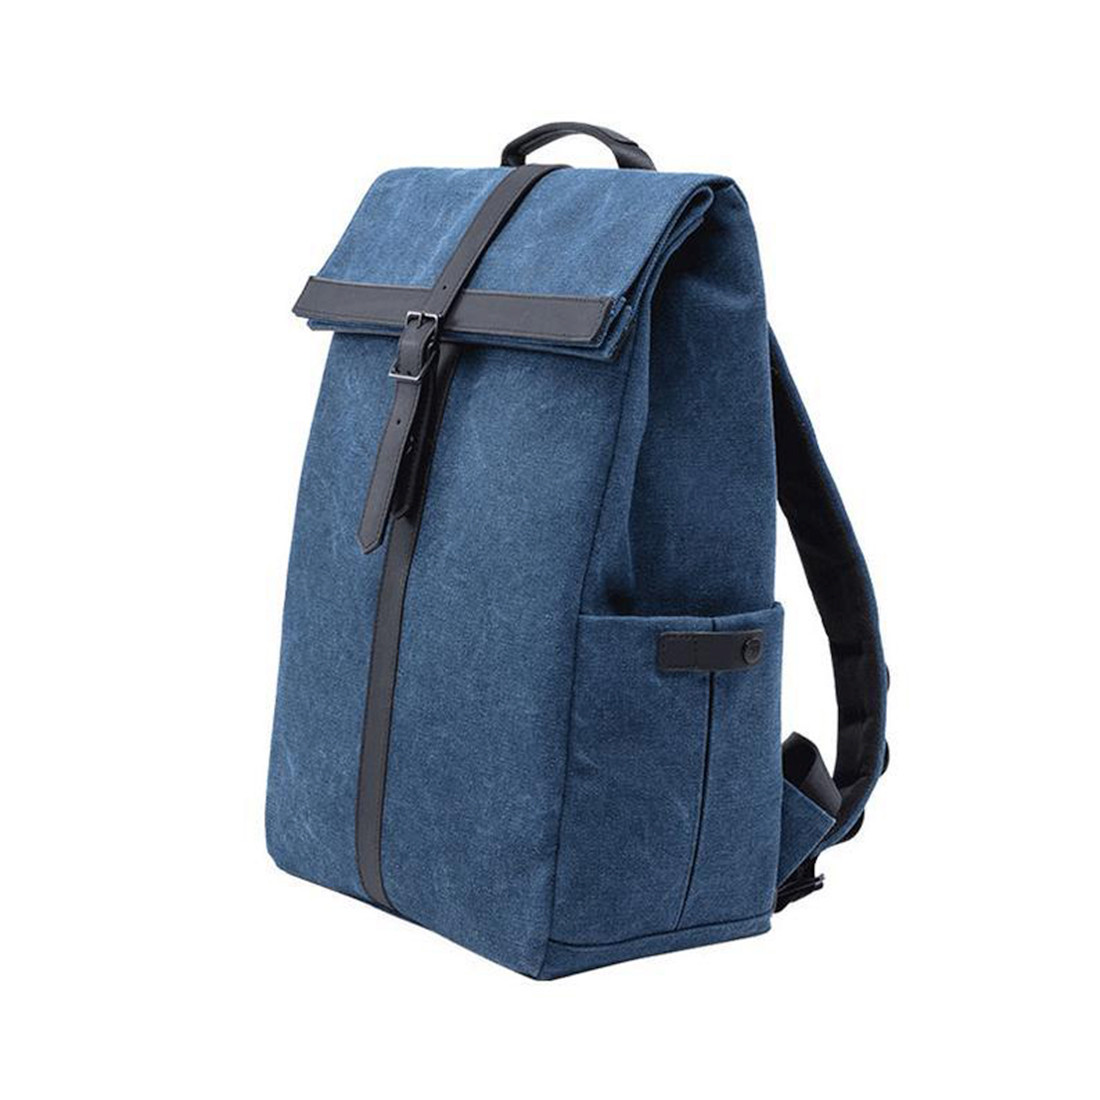 Xioami 6971732584950 Рюкзак RunMi 90' Points GRINDER Oxford Leisure Backpack, 14.1""